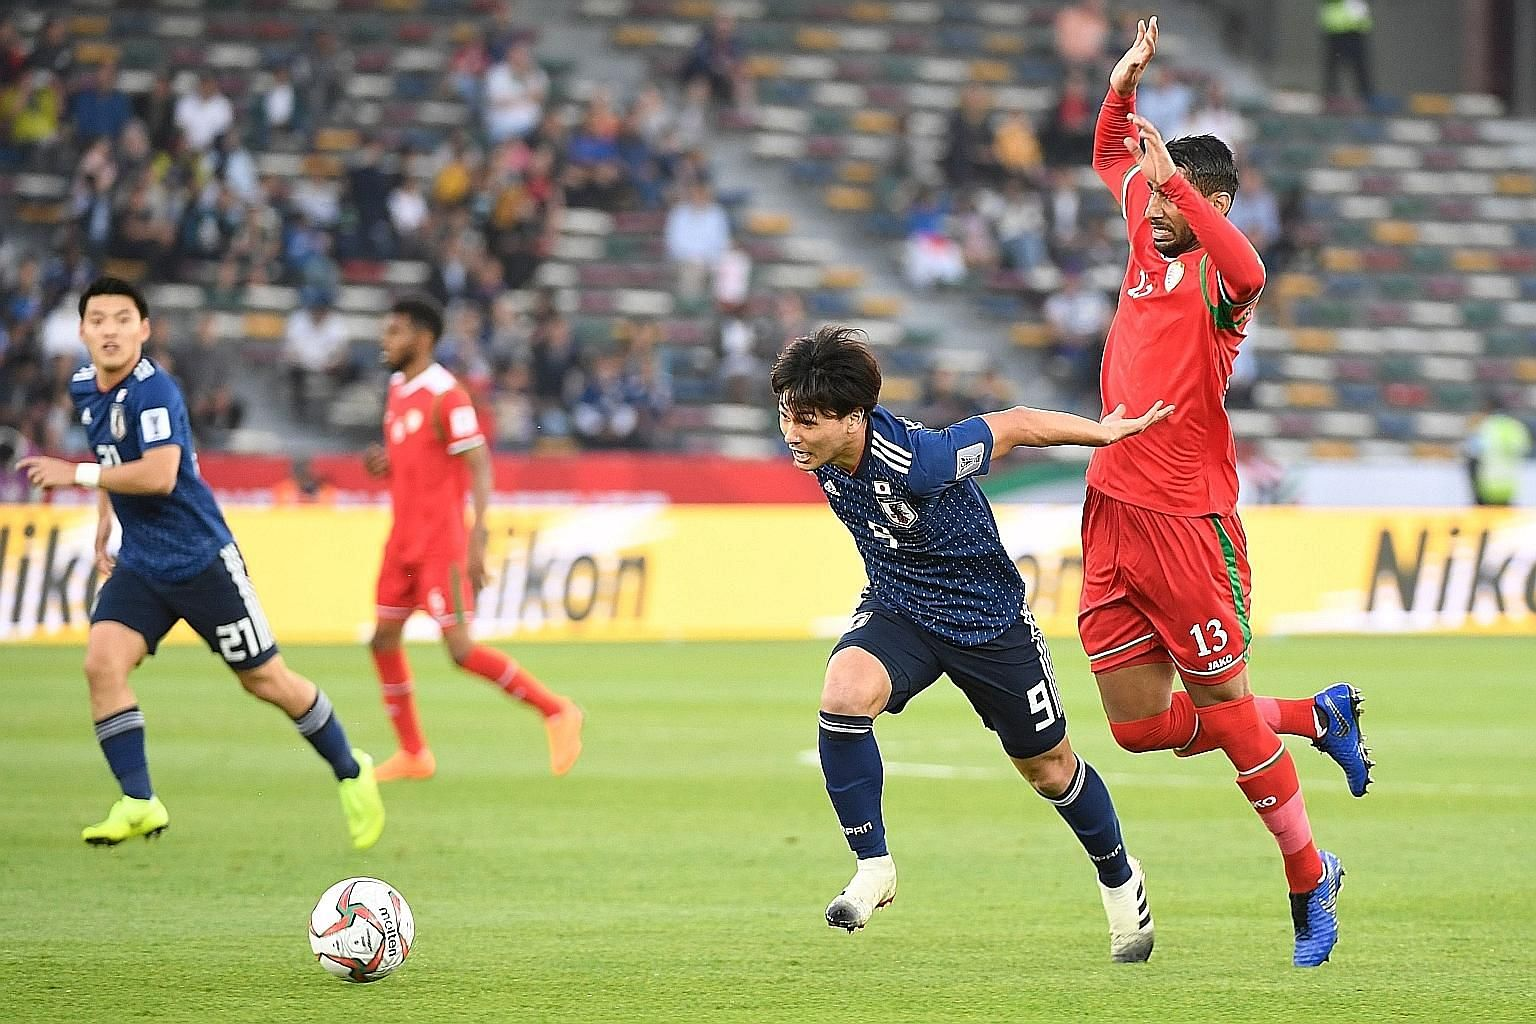 Japan's forward Takumi Minamino evading the attentions of Oman's Khalid Al-Braiki during their Group F game at the Hazza bin Zayed Stadium in Abu Dhabi. Japan won 1-0.